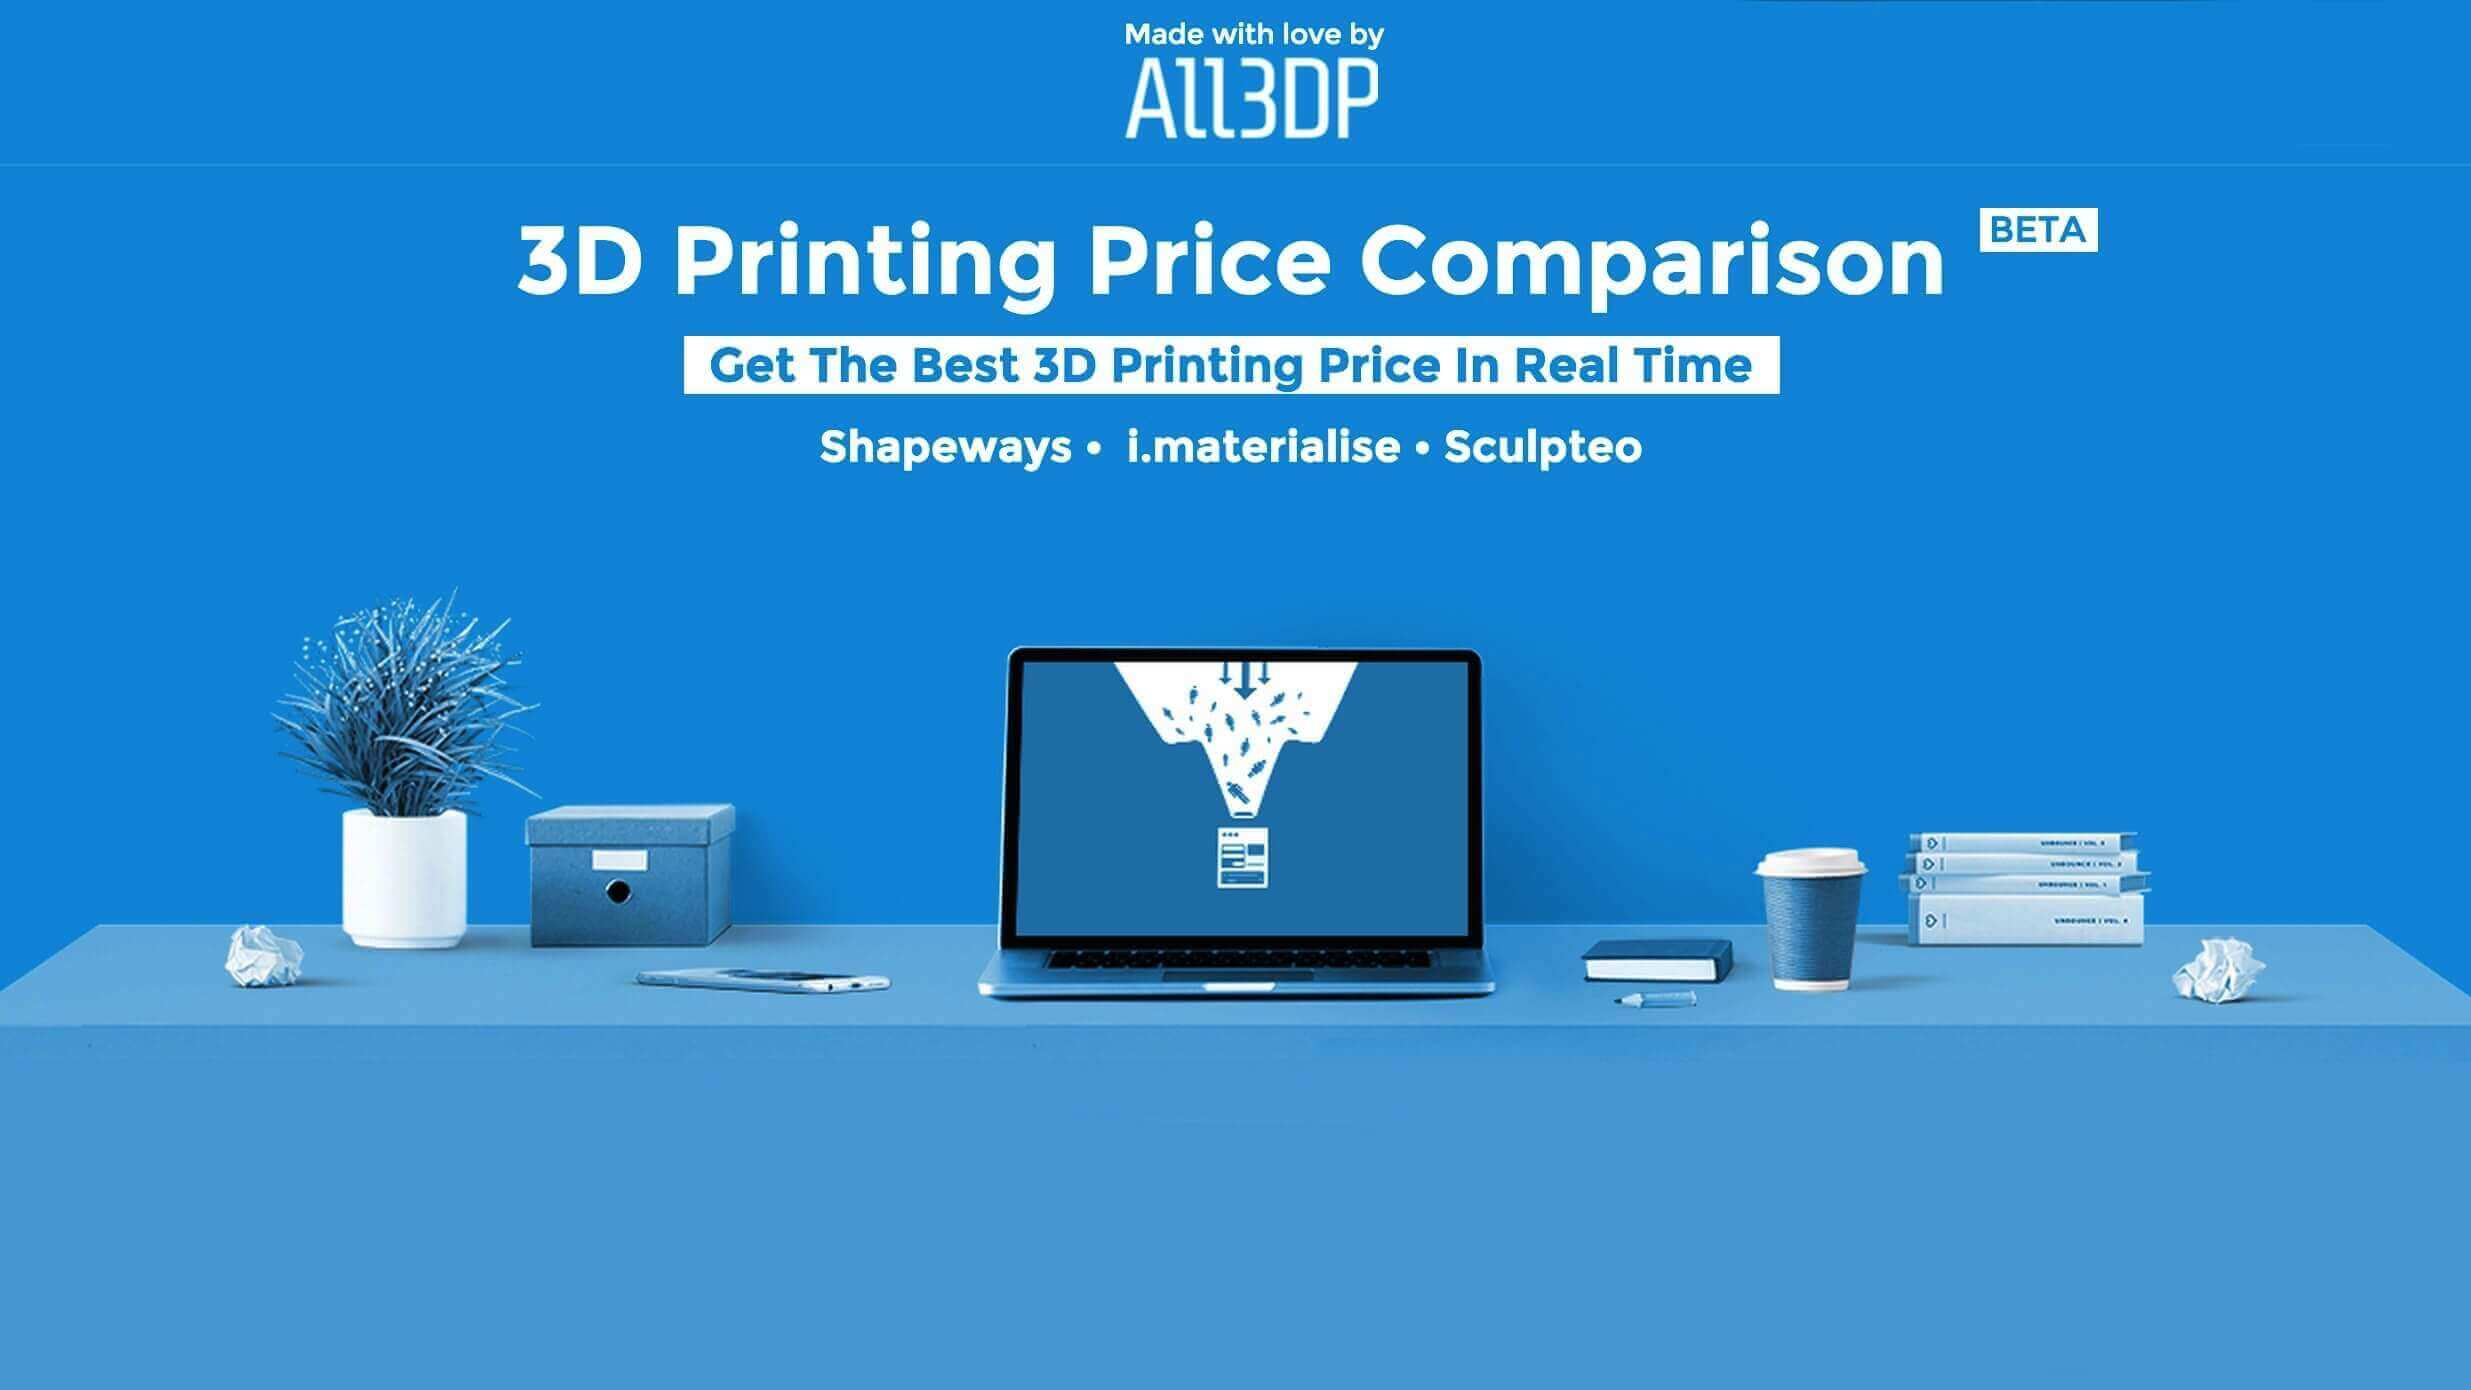 How to Use All3DP's Price Comparison Service | All3DP